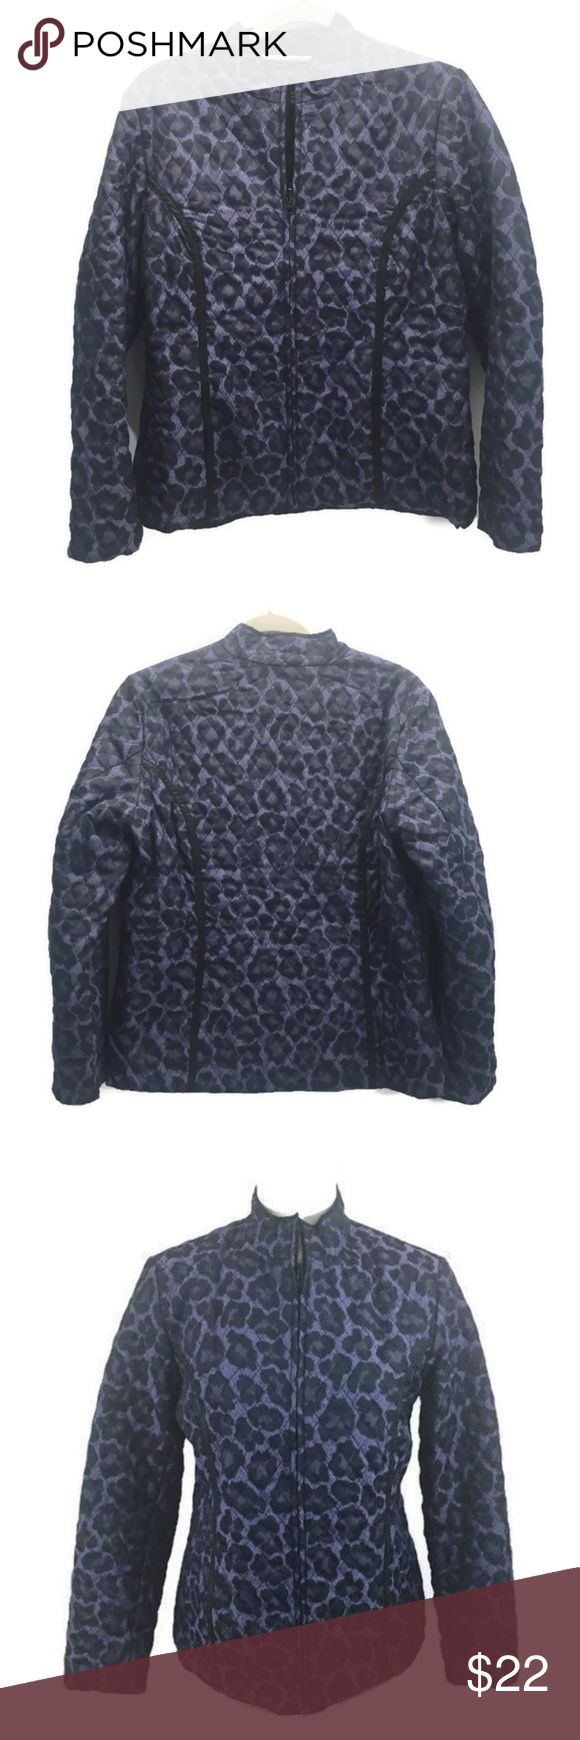 """Purple Black Animal Print Zip UP Quilted Jacket Peck & Peck Collection Purple and Black Leopard Print Quilted Jacket Womens Size Medium Zip Front Solid Black Quilted Lining  Jacket is perfect for cooler weather  Jacket is pre-owned with No Issues.  Very Clean & Nice No Stains, Tears & Fraying  Approximate Measurements taken zipped up  Bust 40"""" Length 25"""" Peck & Peck Jackets & Coats"""